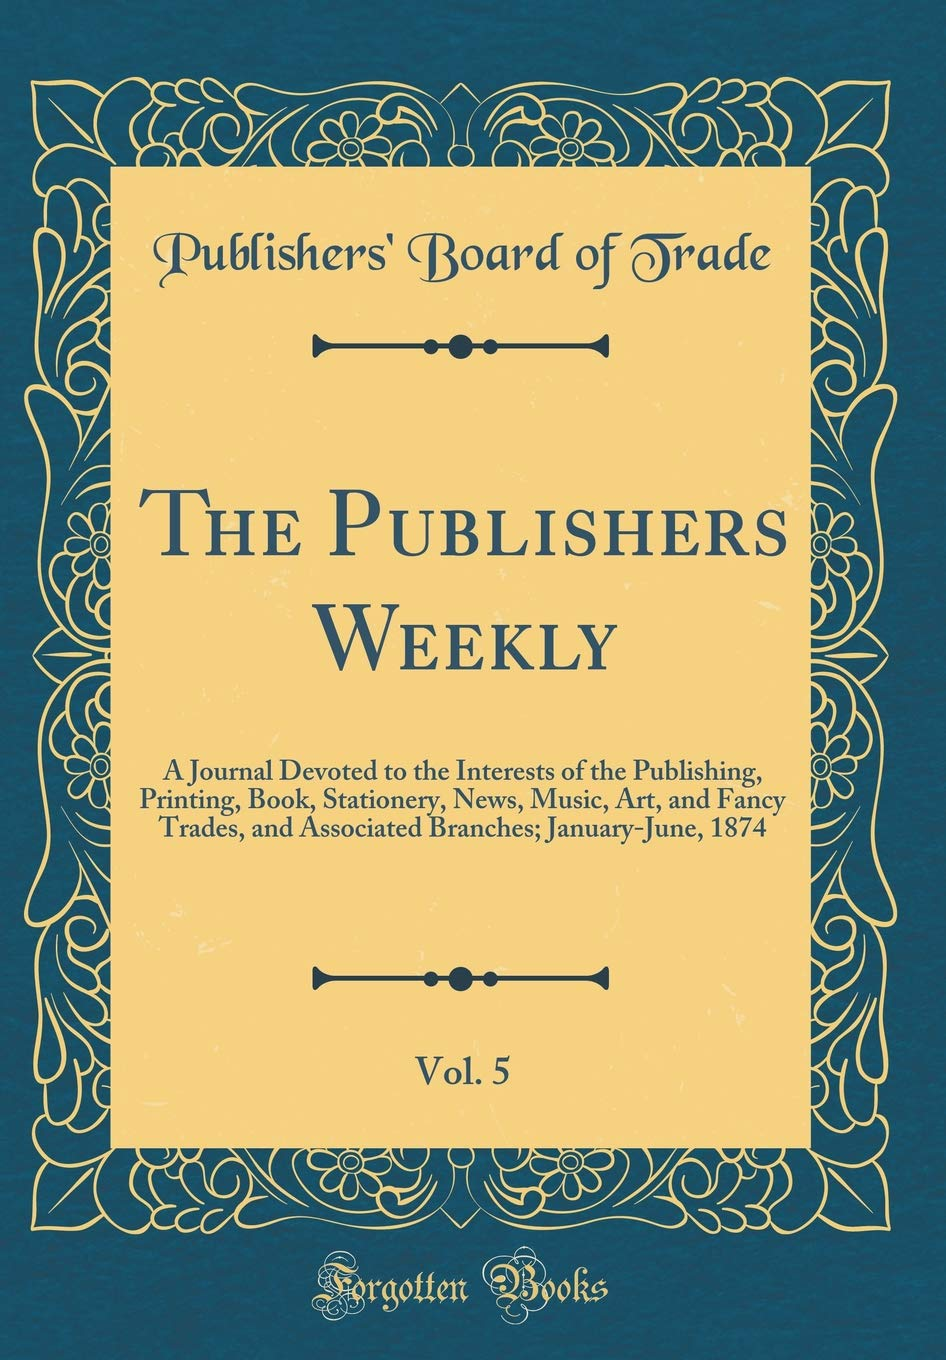 Read Online The Publishers Weekly, Vol. 5: A Journal Devoted to the Interests of the Publishing, Printing, Book, Stationery, News, Music, Art, and Fancy Trades, ... January-June, 1874 (Classic Reprint) PDF